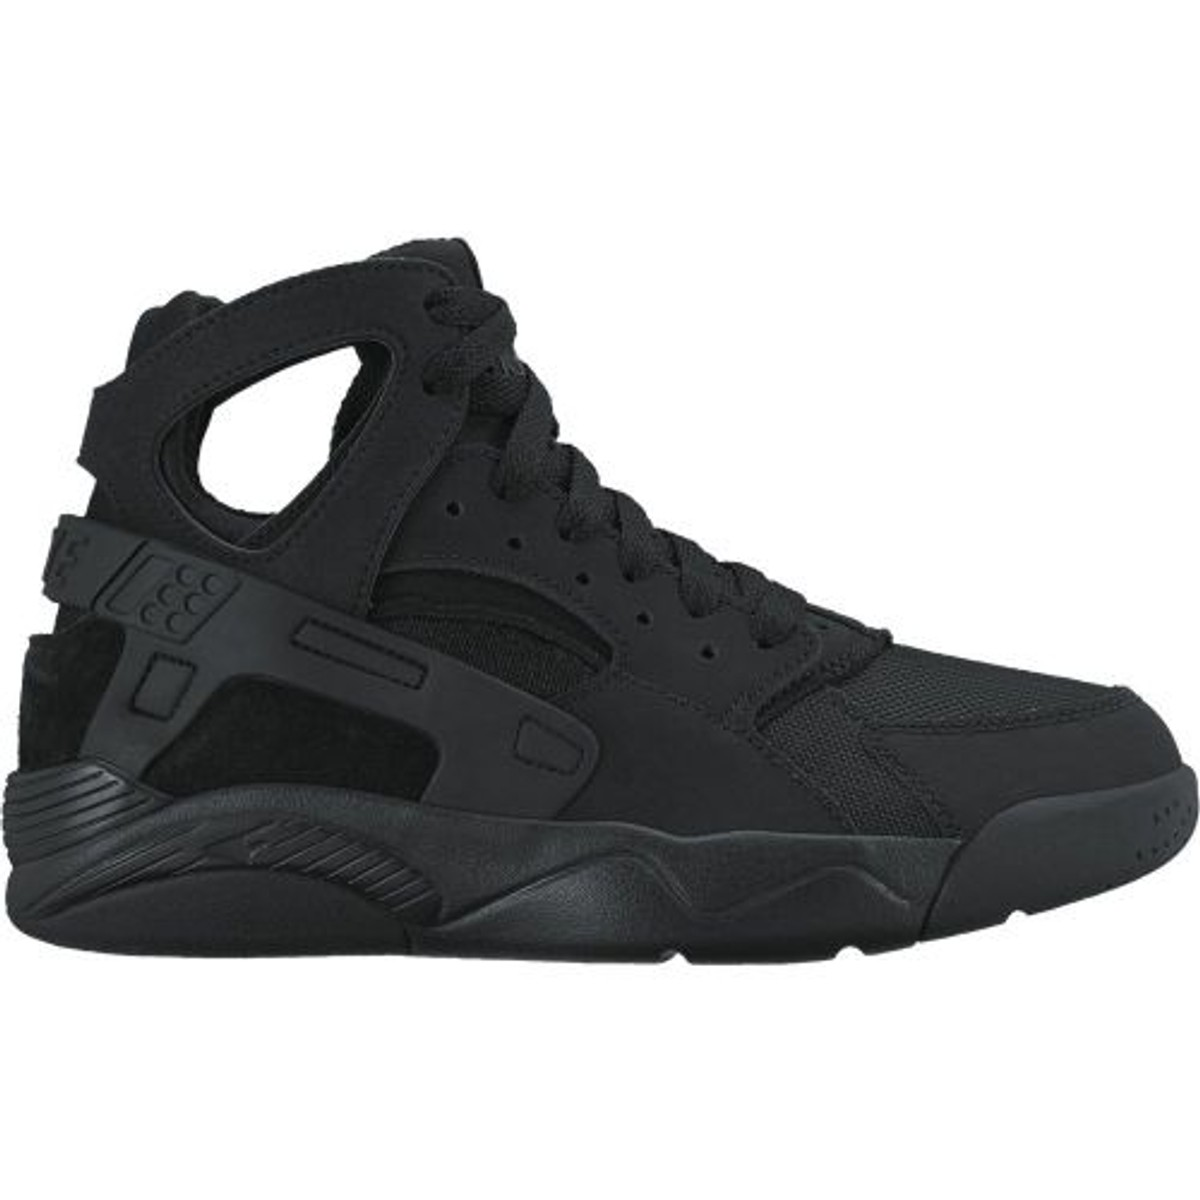 Basket Nike Flight Huarache Junior Ref. 705281 009